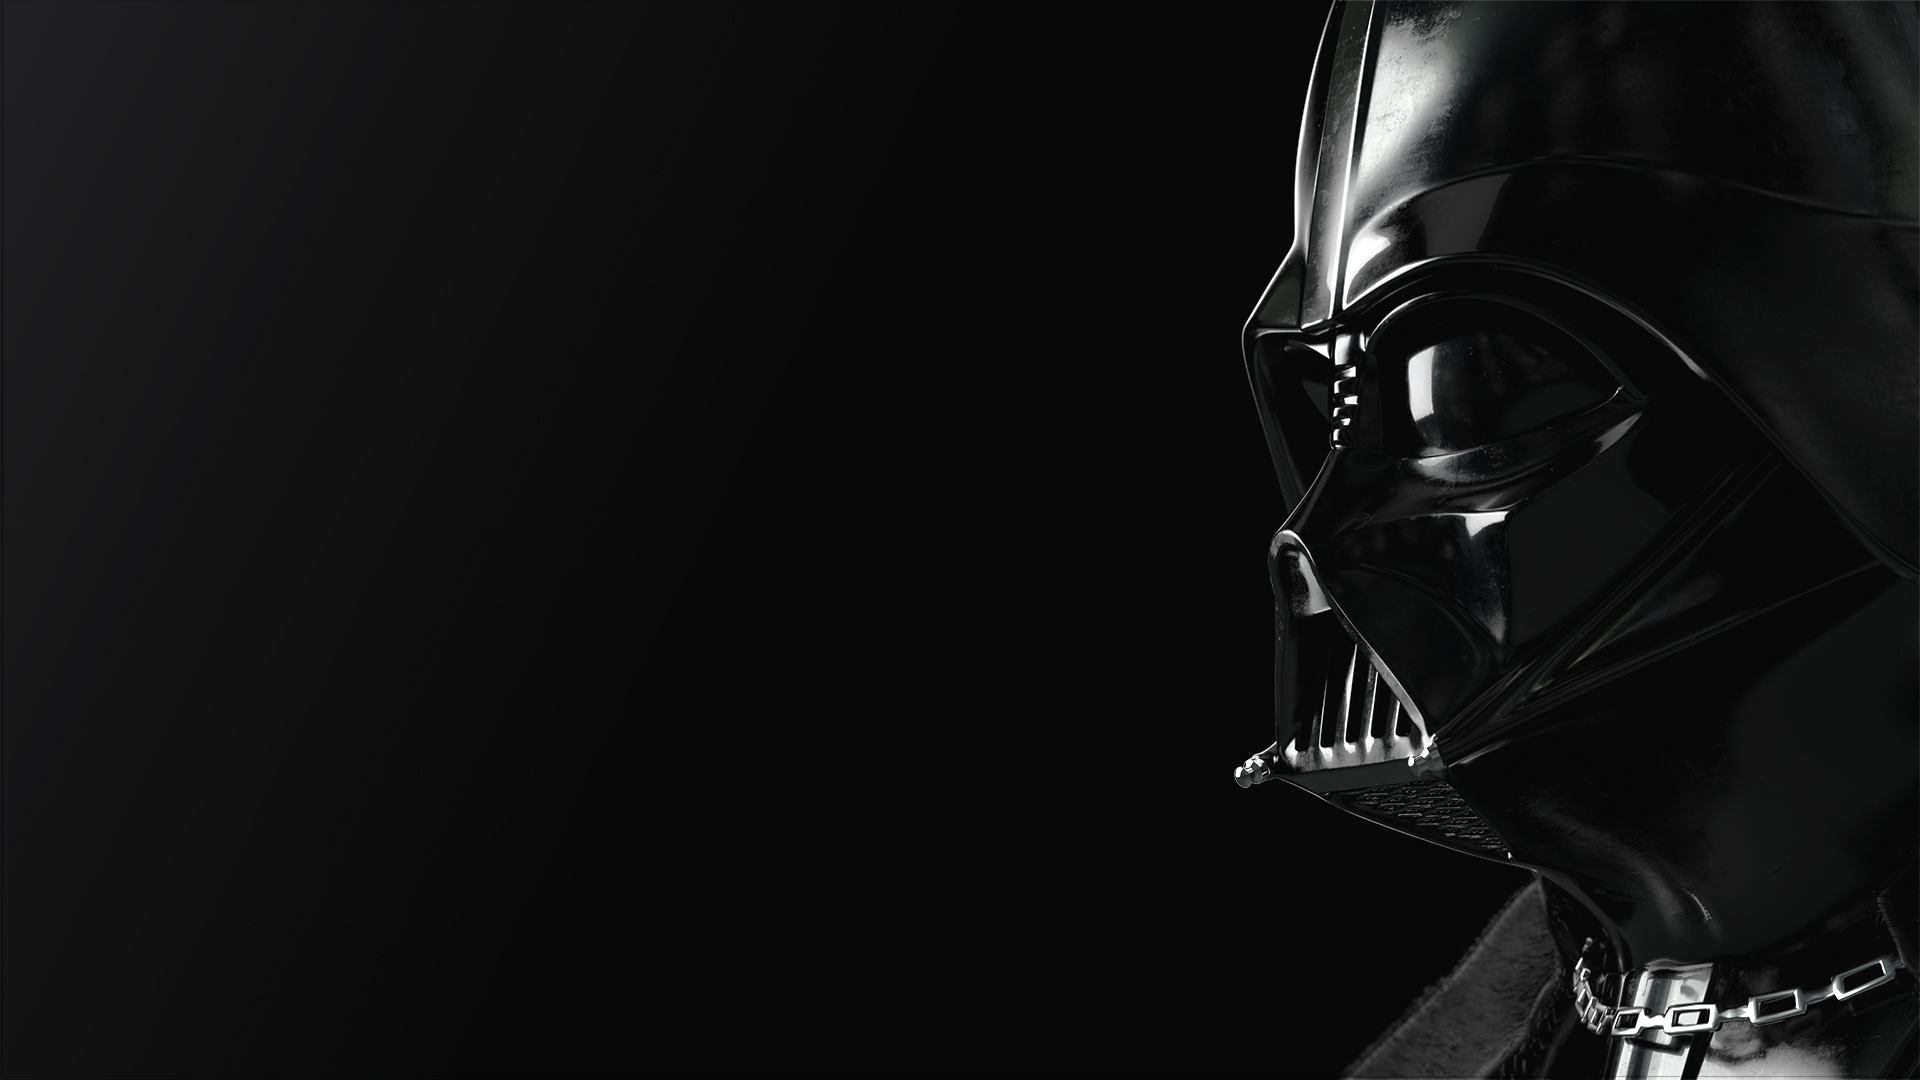 Star Wars High Definition Wallpaper Posted By Zoey Thompson